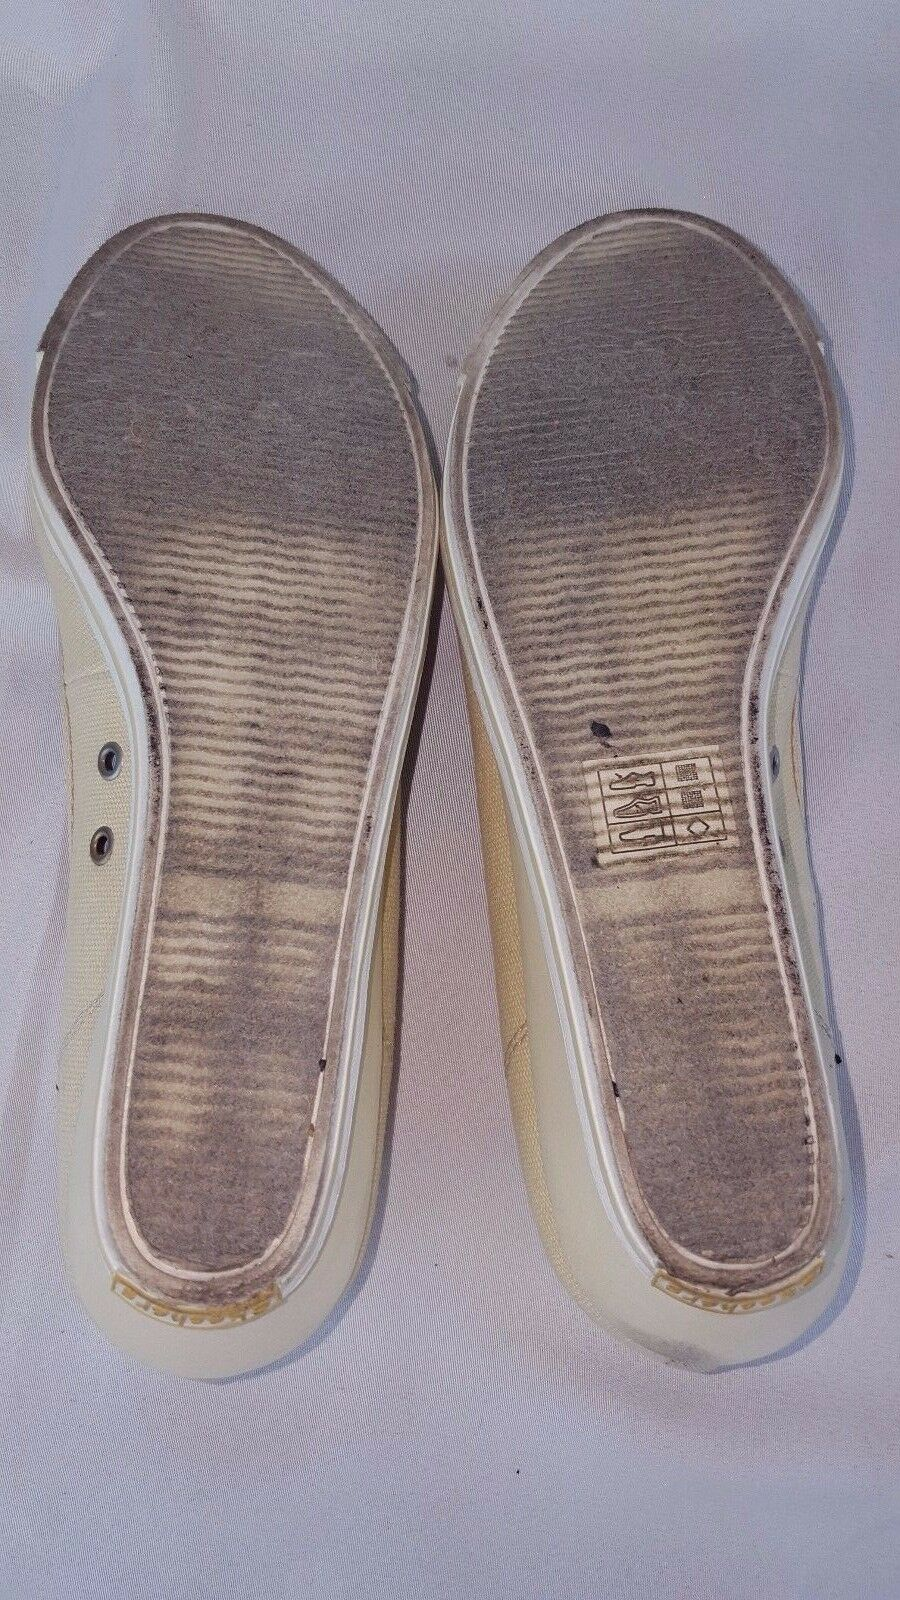 Skechers Cream Cali Slip On On On Canvas shoes Women's size 7.5 12a7a4